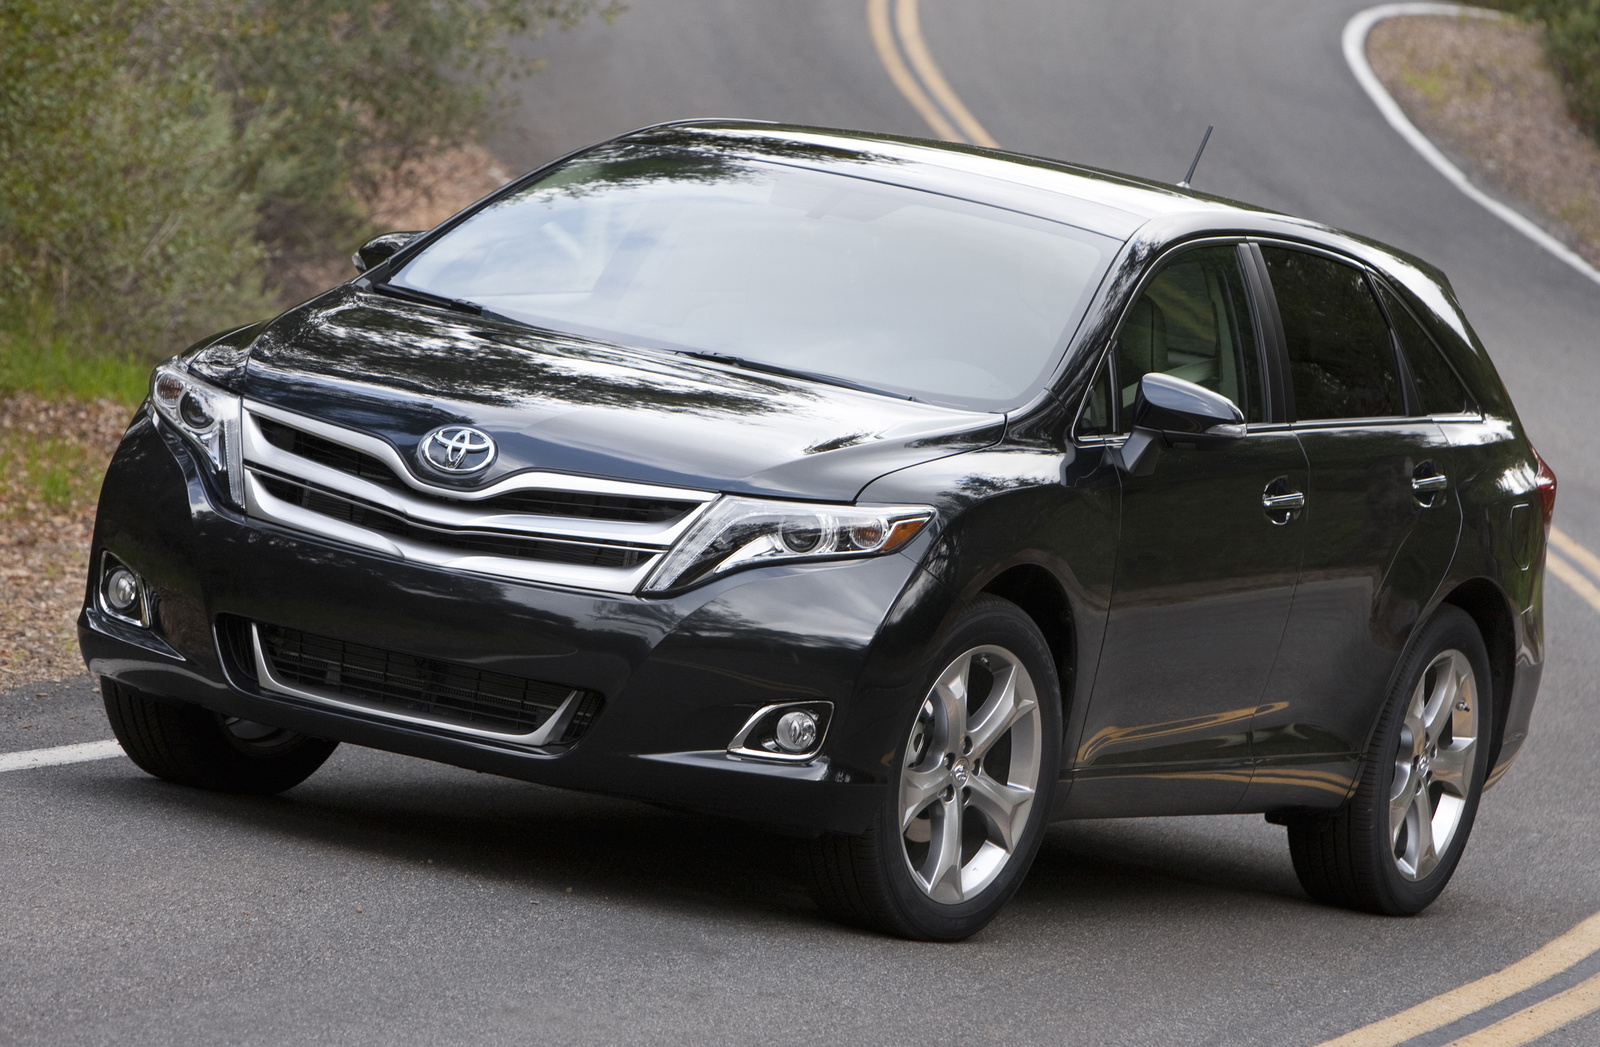 2015 Toyota Venza - Test Drive Review - CarGurus